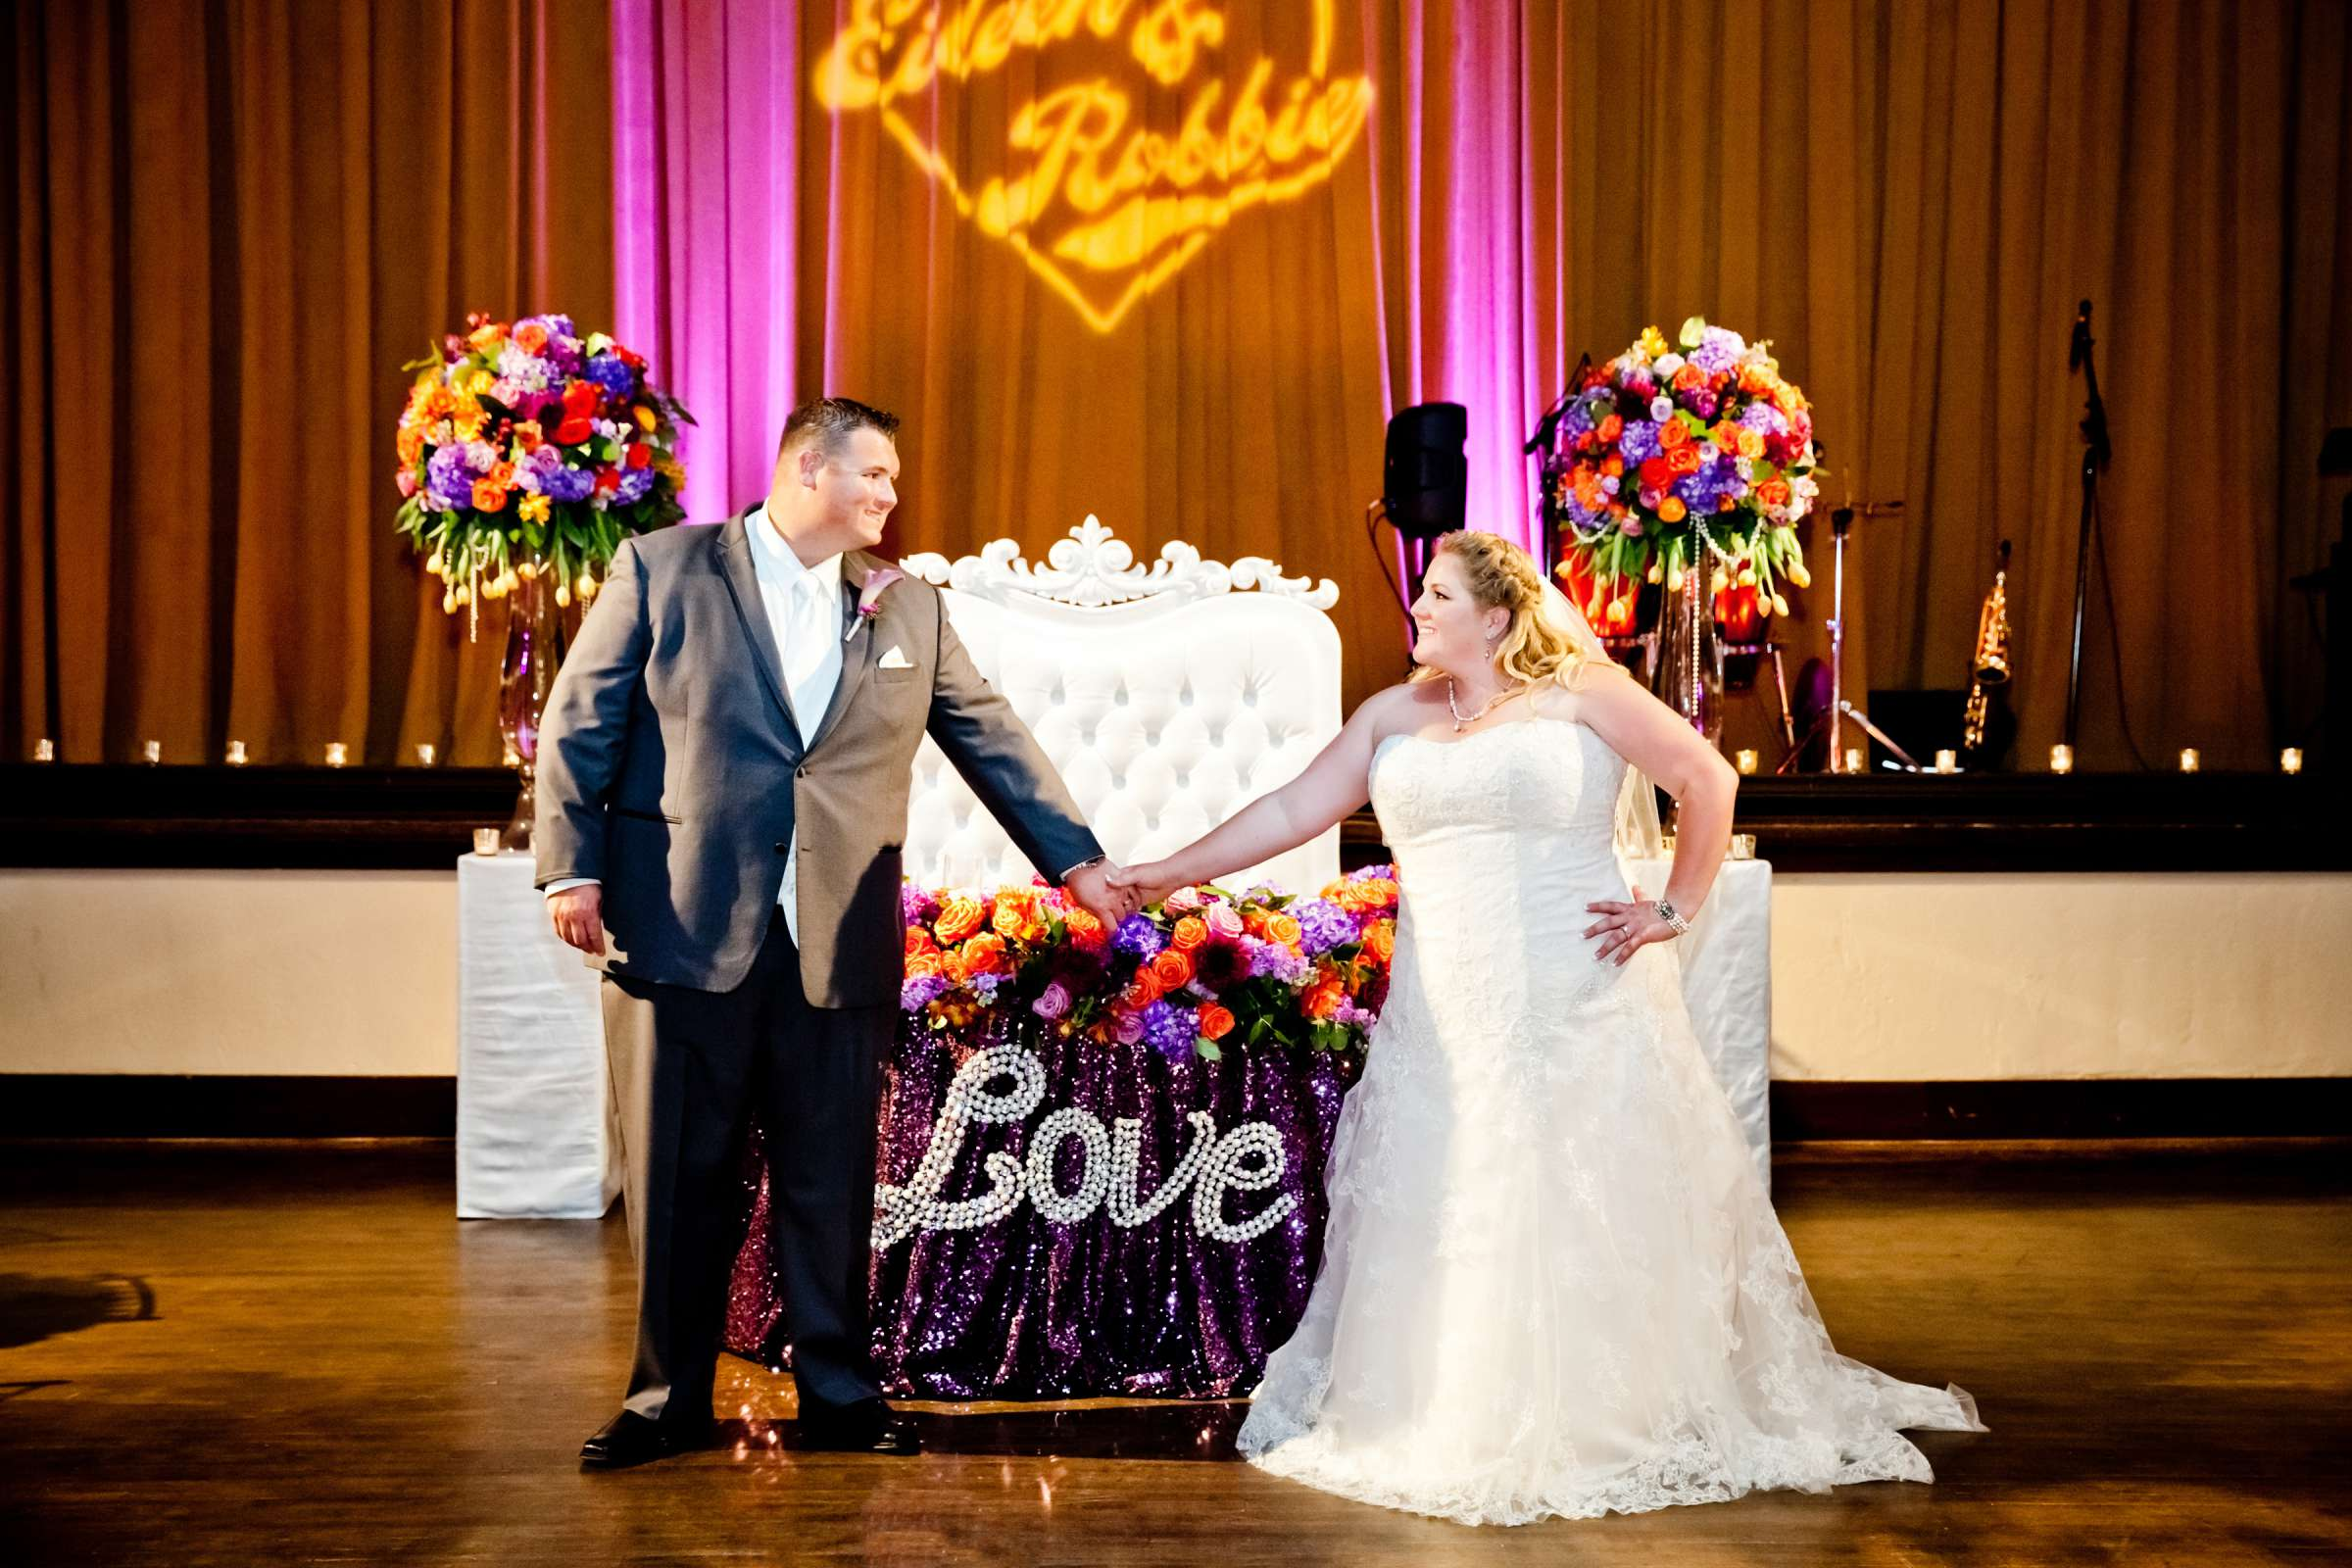 The Prado Wedding coordinated by Monarch Weddings, Eileen and Robbie Wedding Photo #55 by True Photography